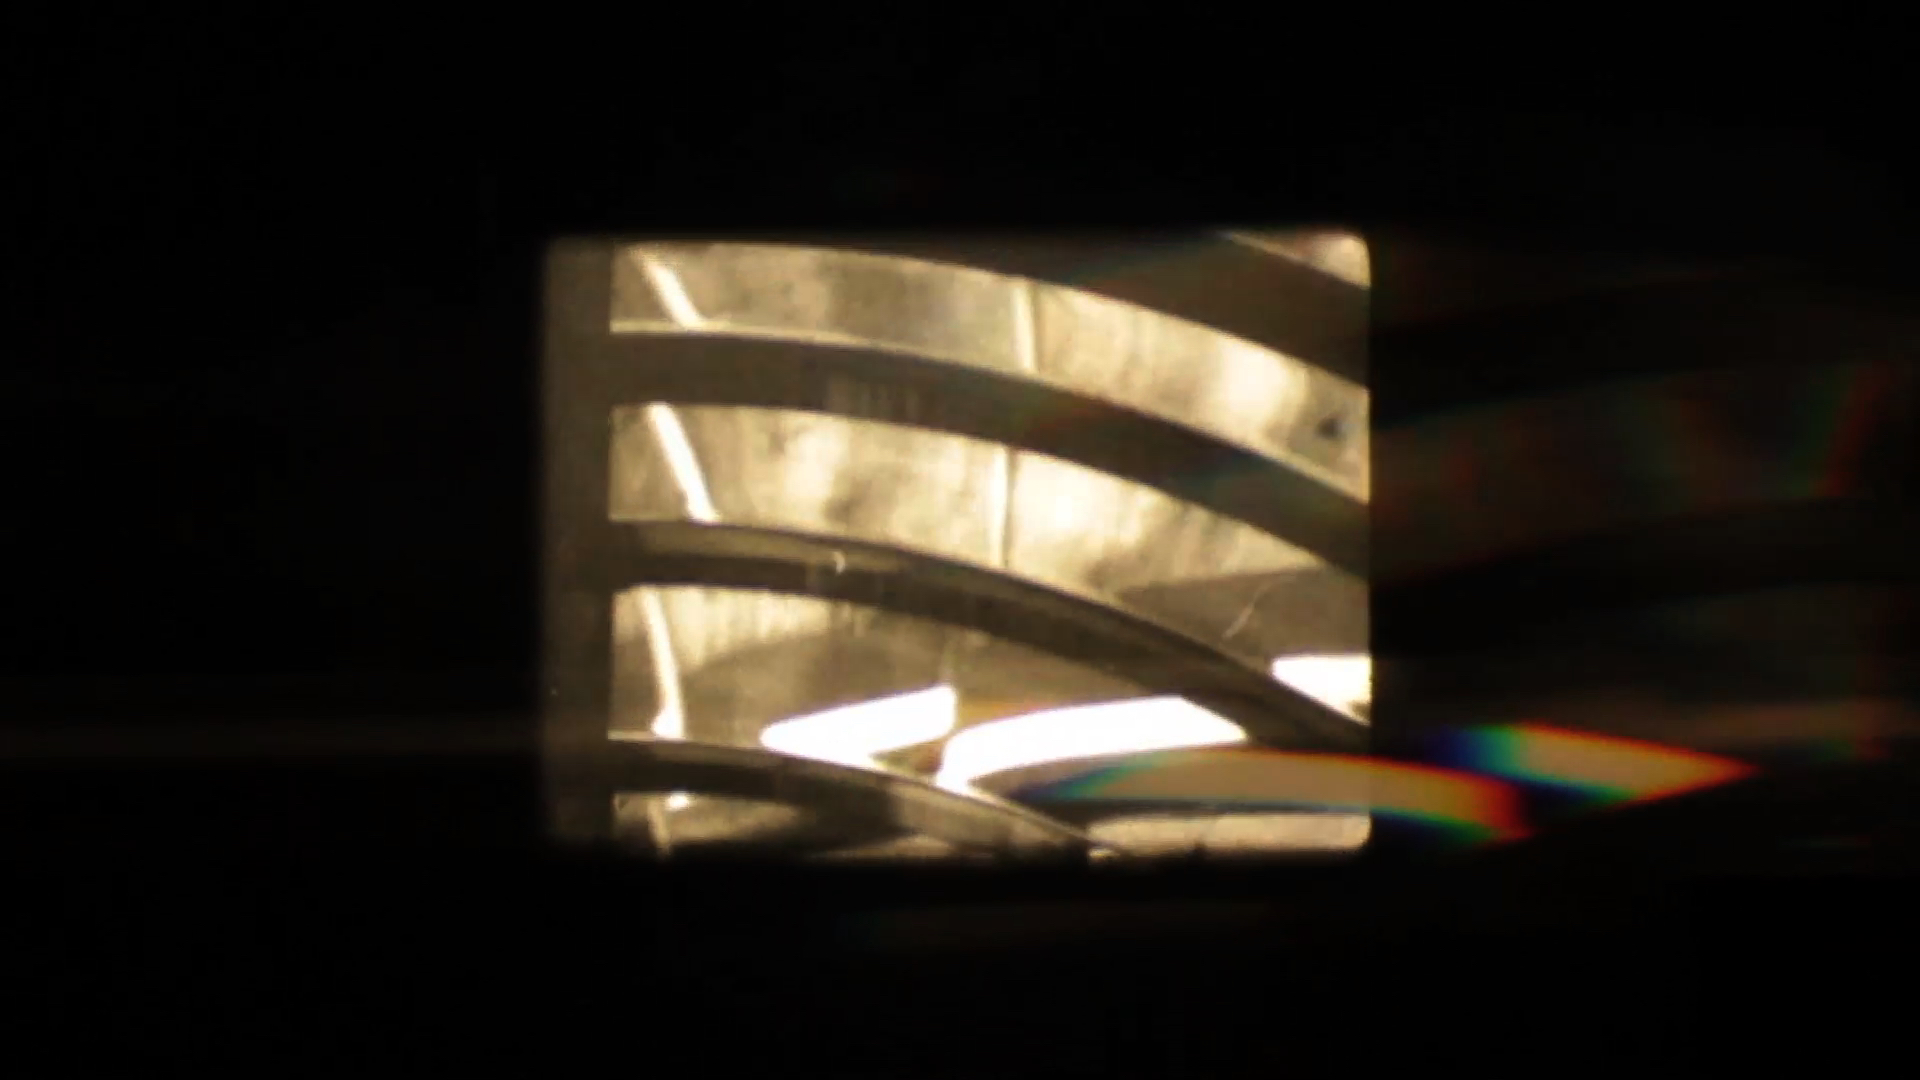 still image: close-up of the prism/bulb mechanism in a light house, refracted light creates a rainbow in bottom right corner